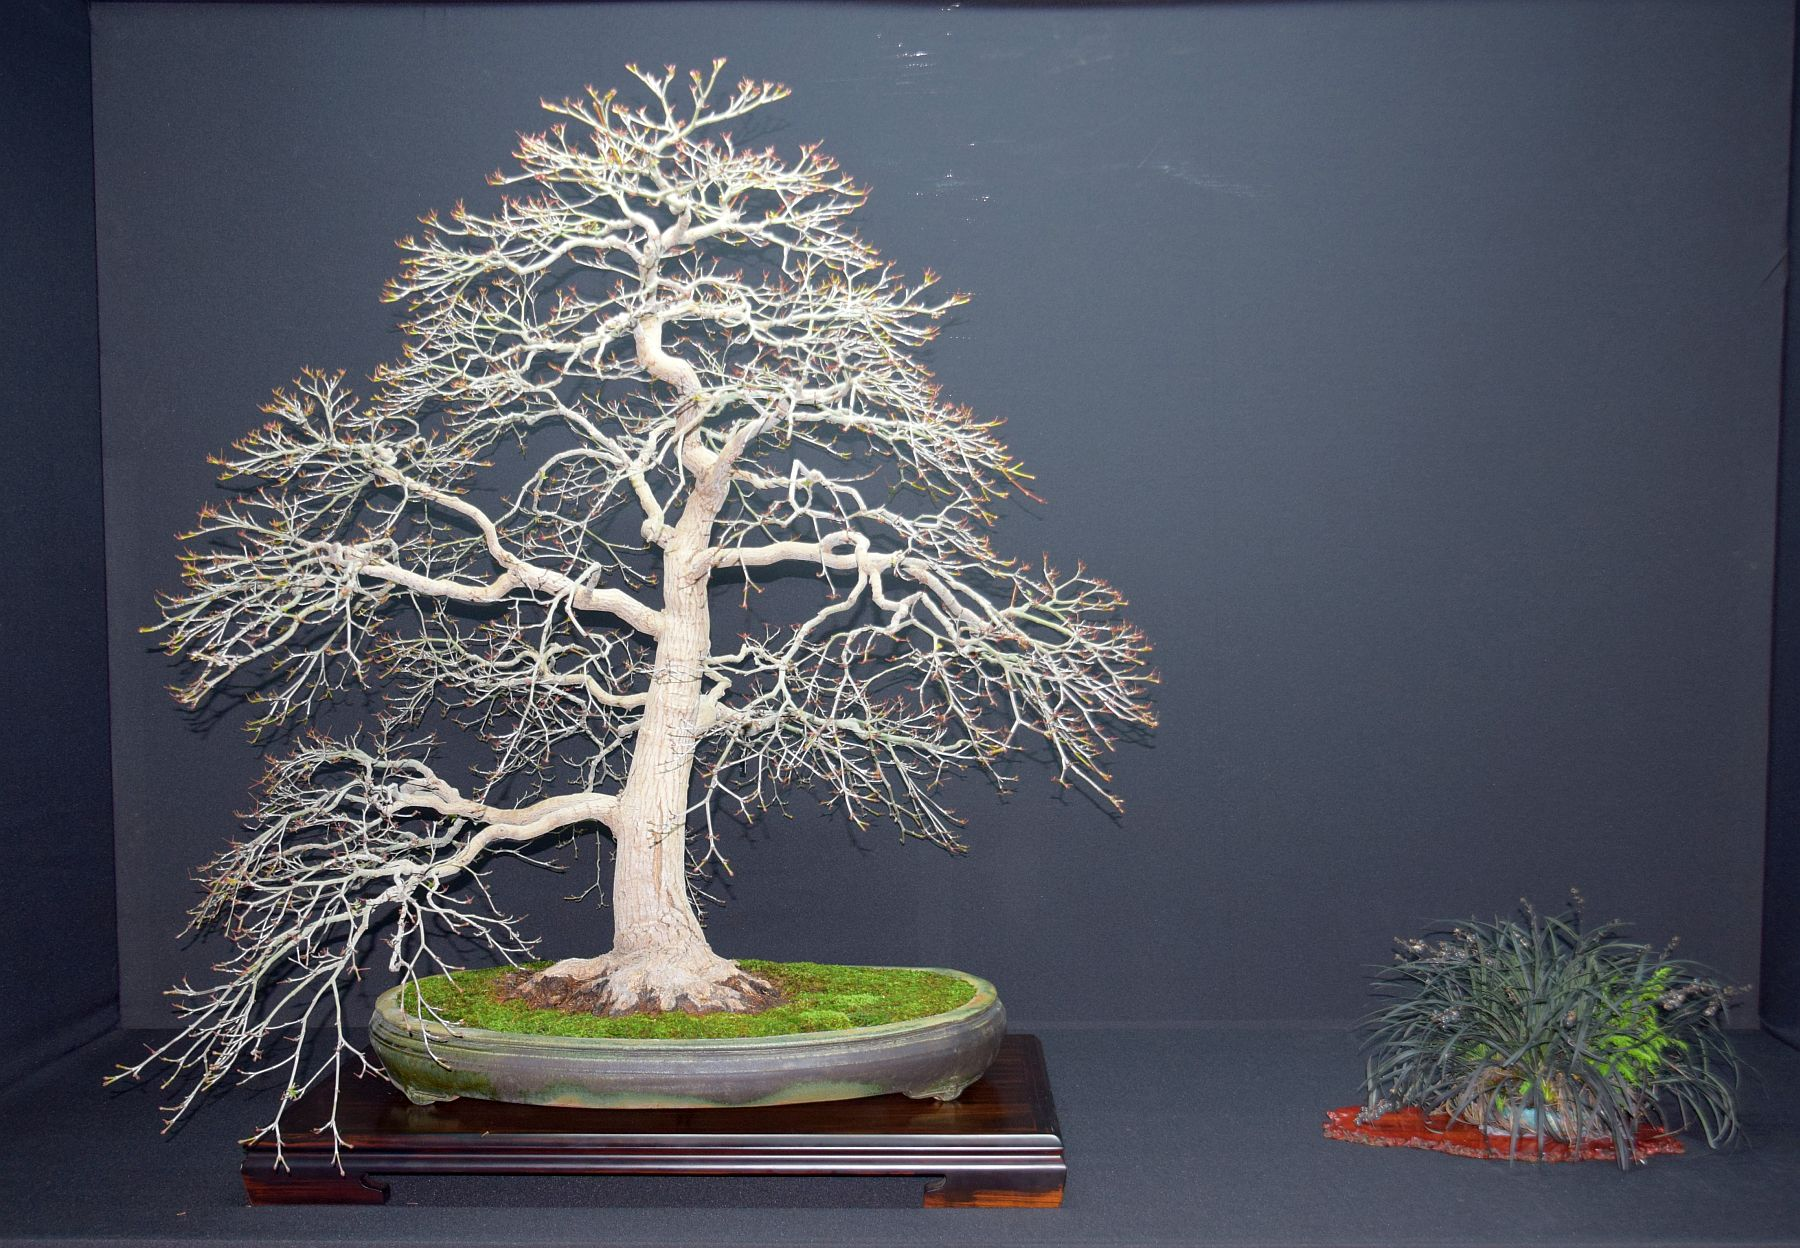 bonsai-museum-luis-vallejo-005